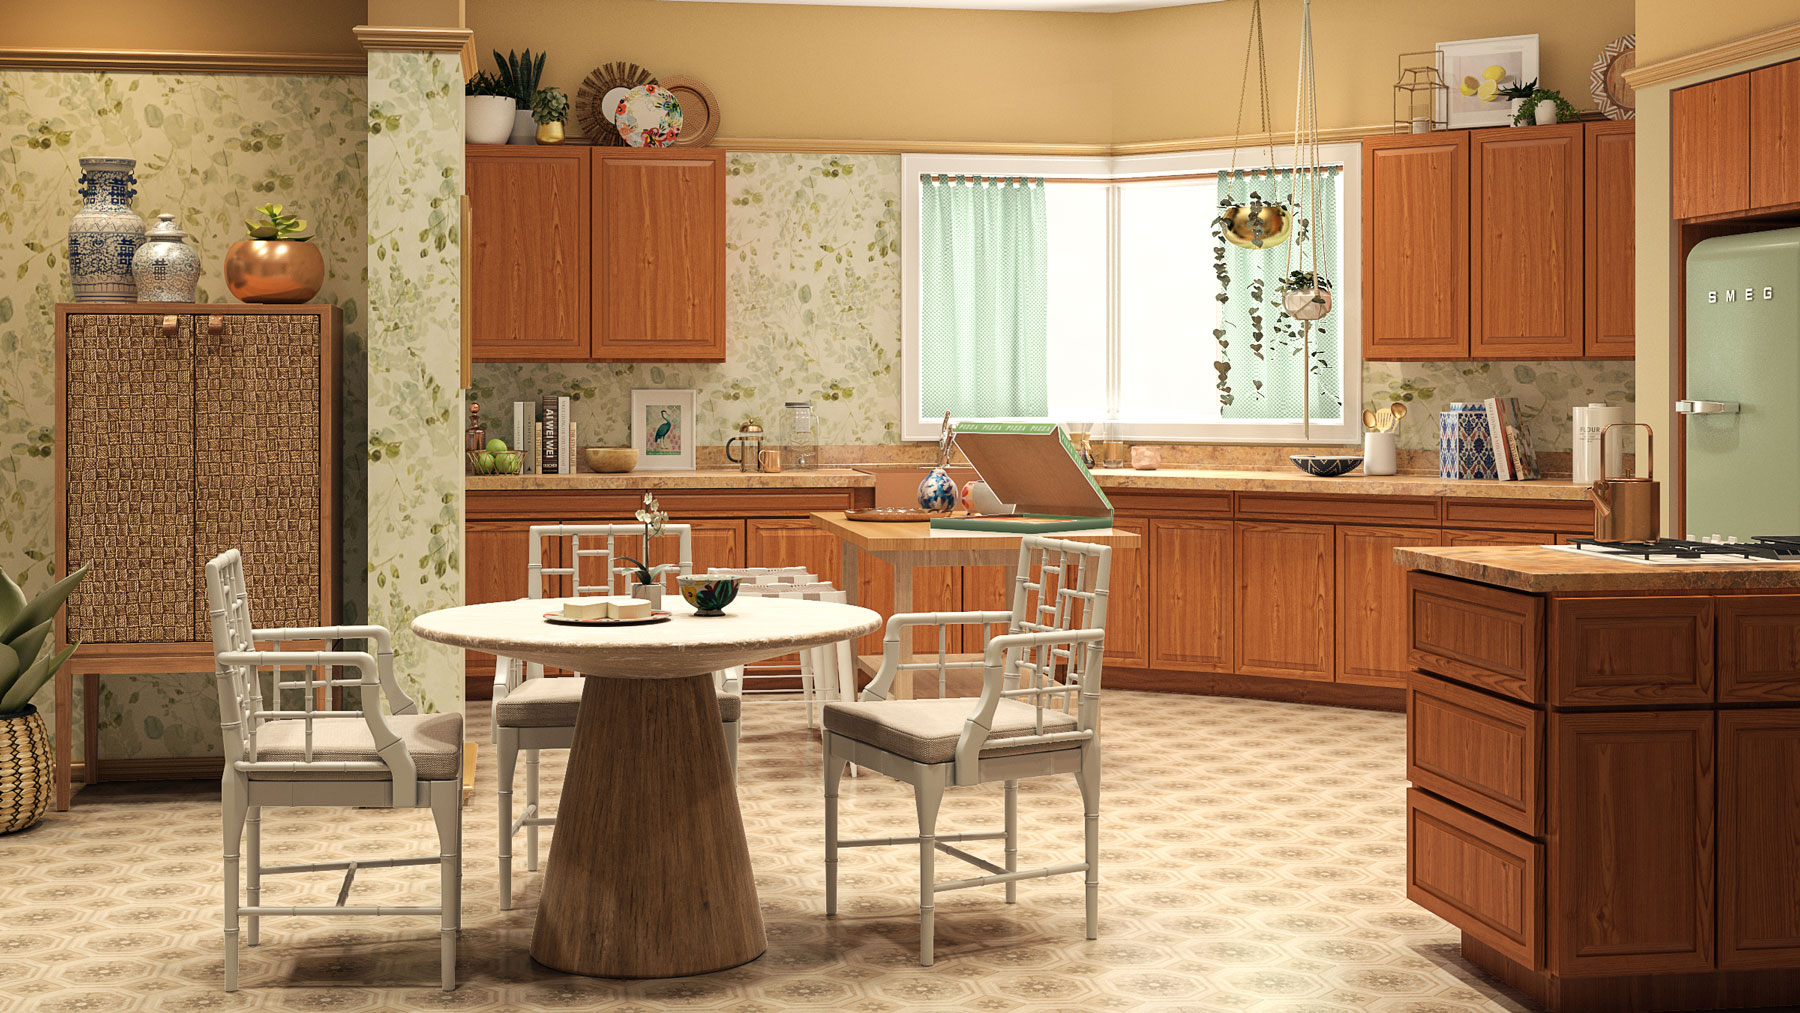 The Golden Girls House Updated - Kitchen